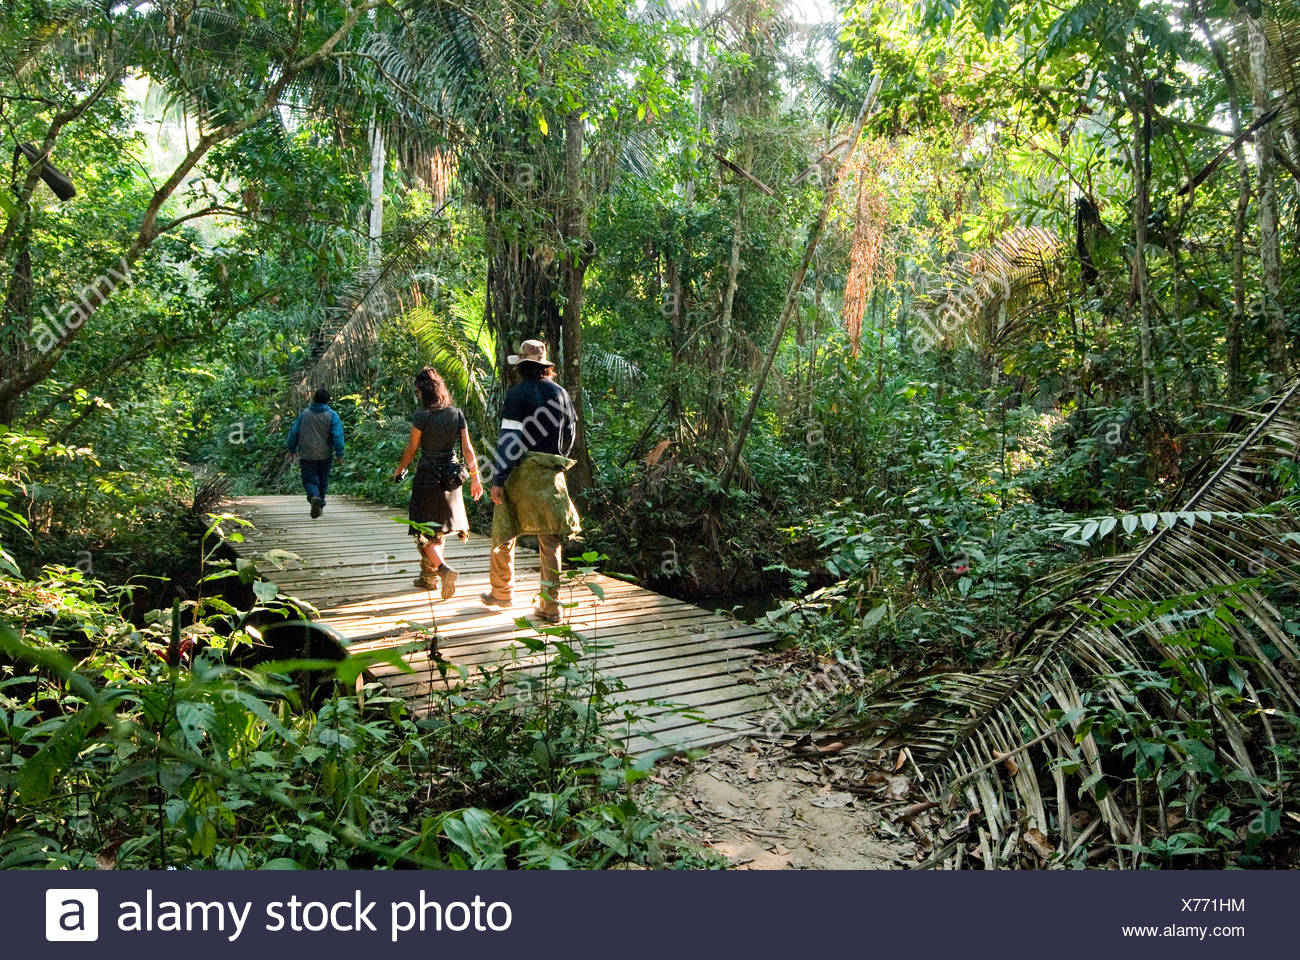 A man and woman walk through the amazon rainforest during the mid morning. - Stock Image